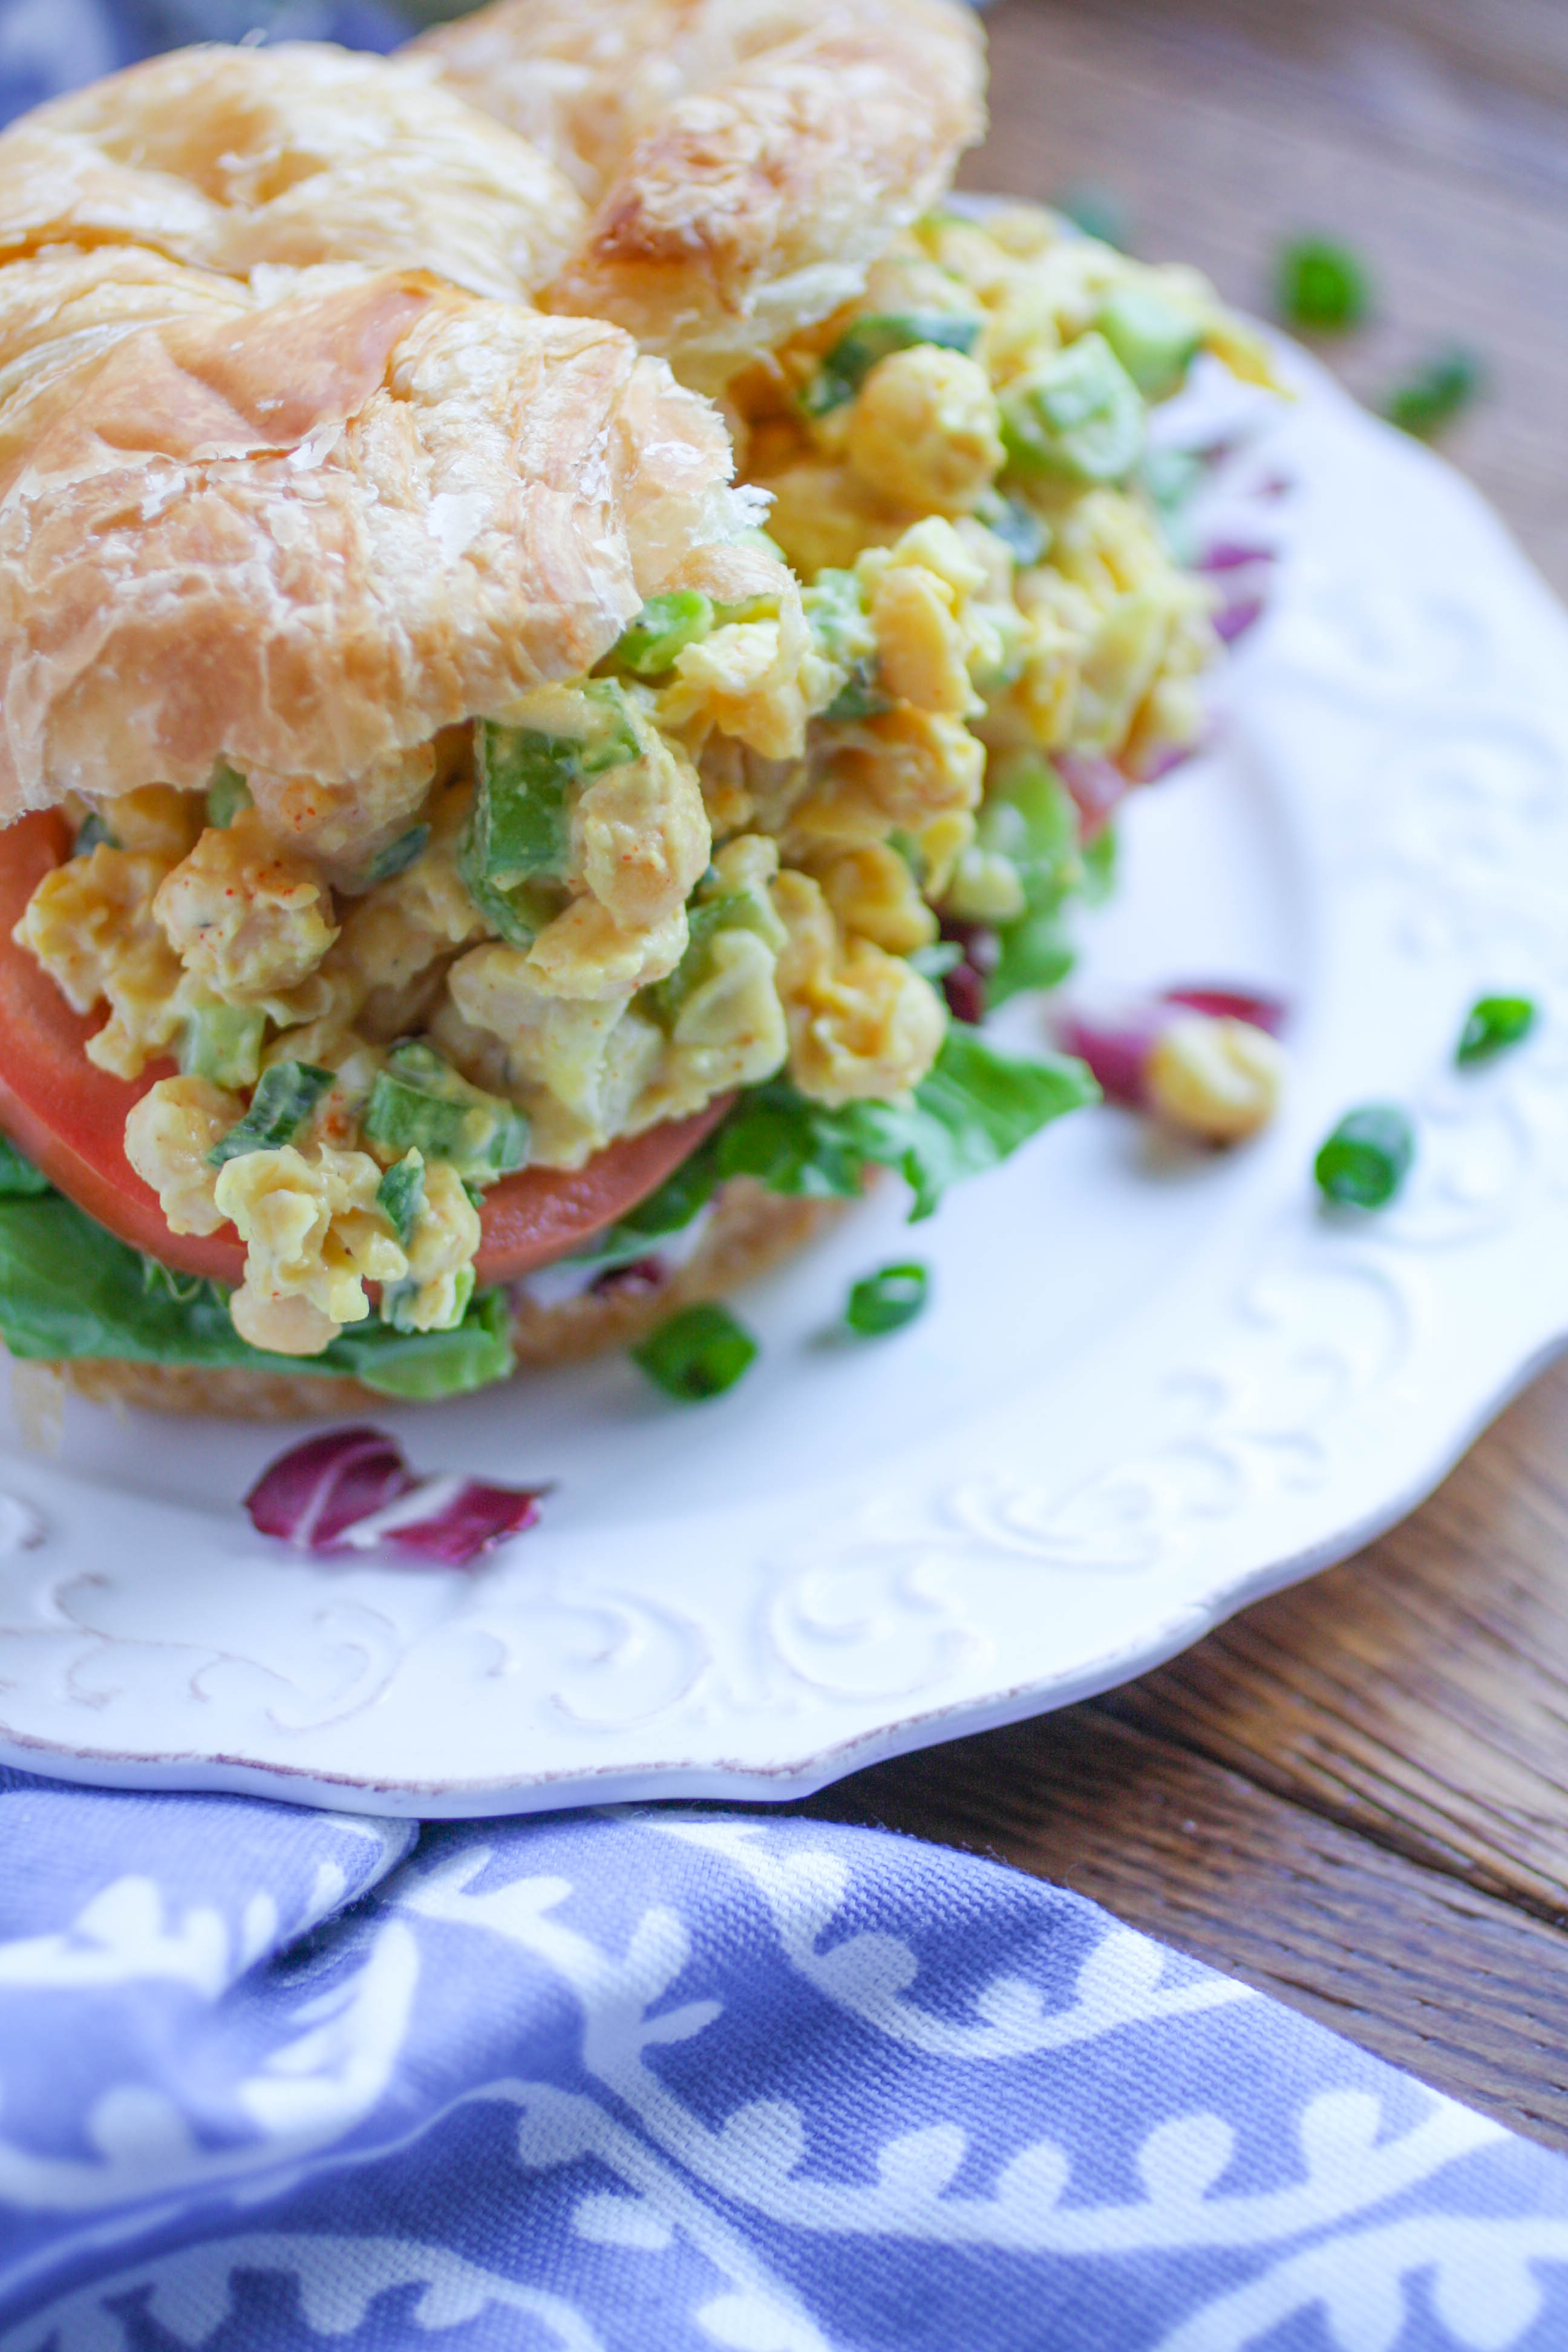 Chickpea Salad Sandwiches are great for lunch, for for a special event like a baby shower! You'll love these flavorful, filling vegetarian sandwiches.